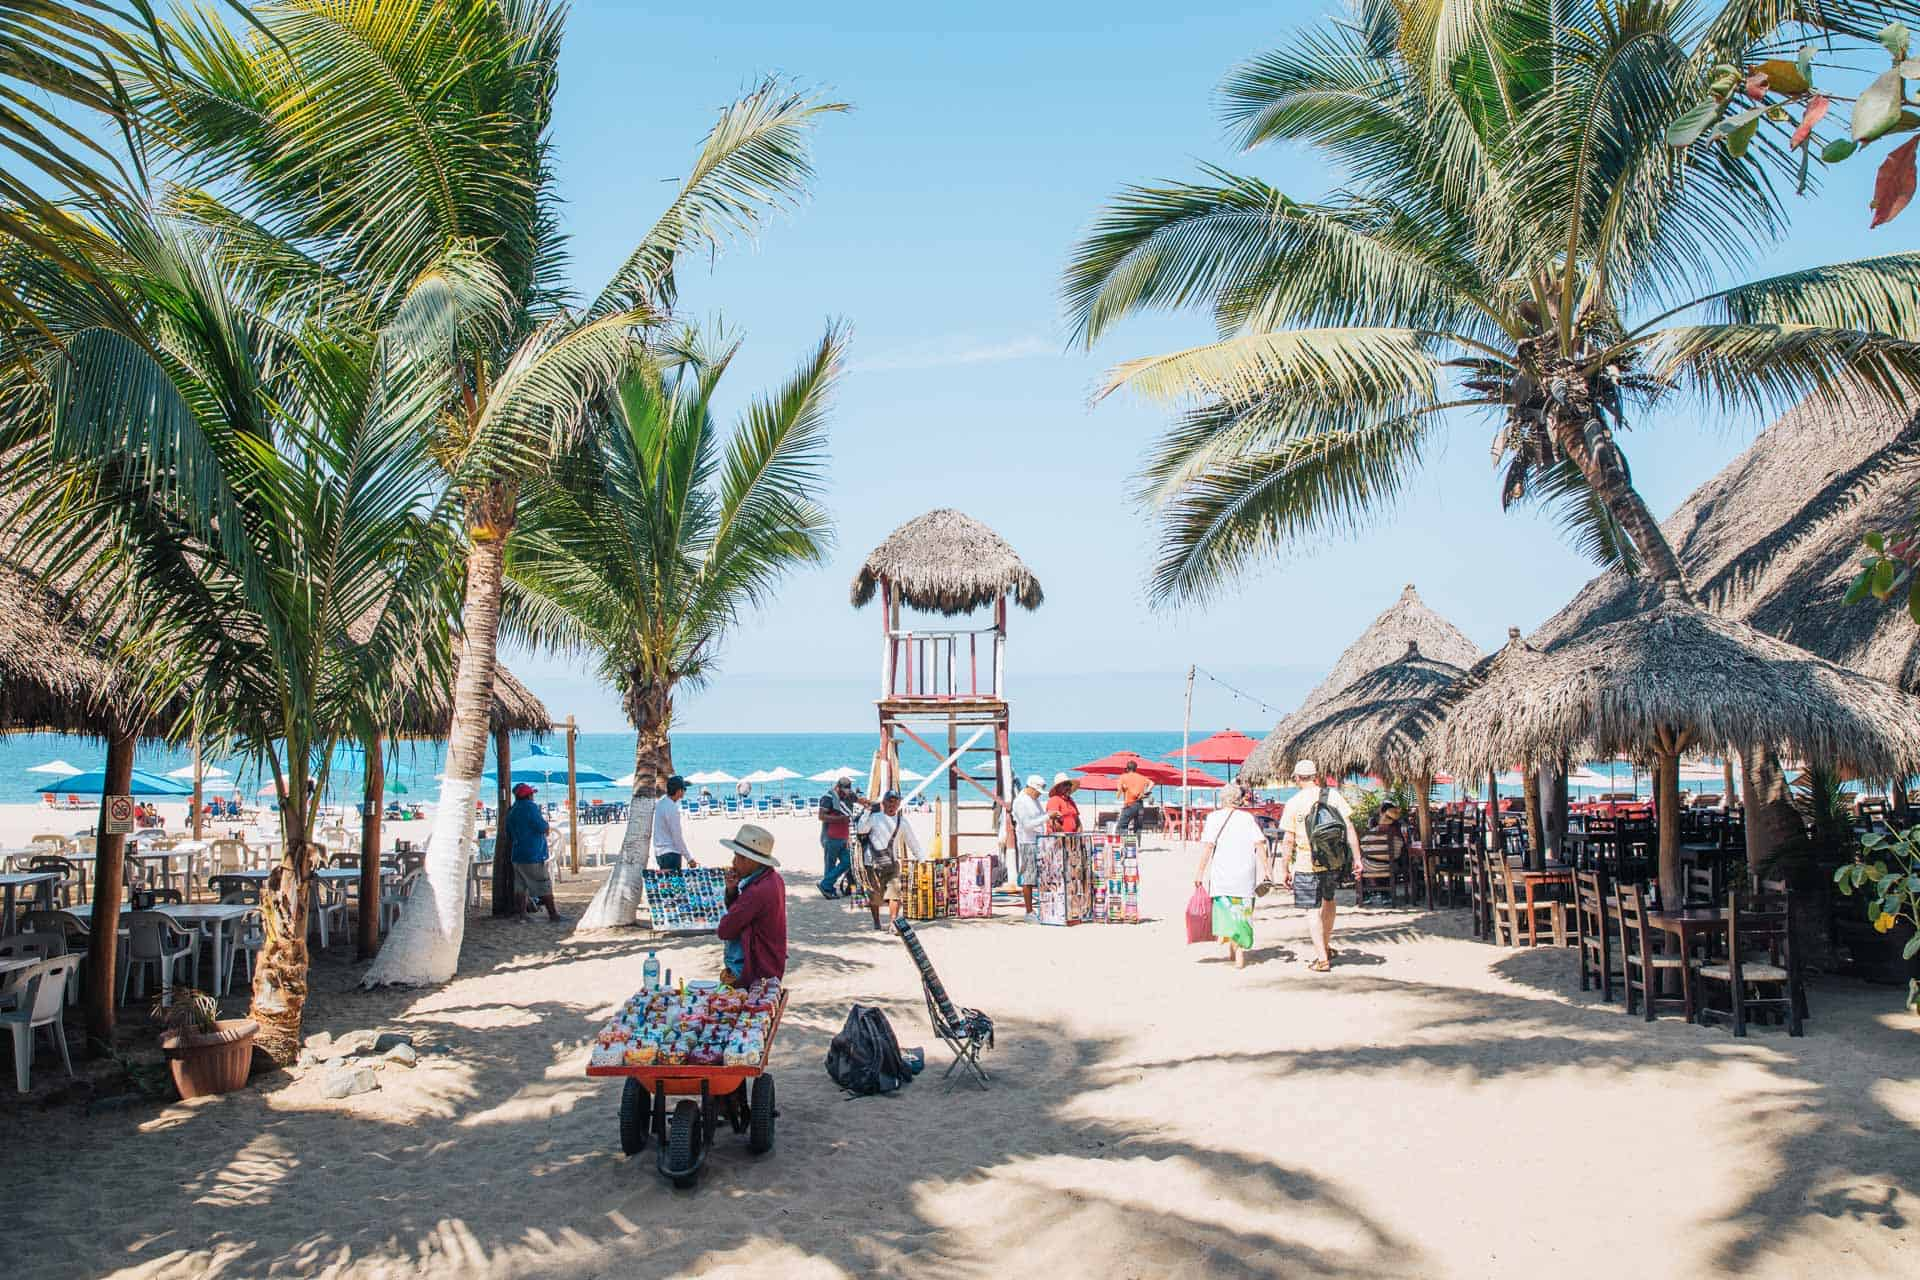 san pancho, things to do in sayulita, sayulita mexico, what to do in sayulita, sayulita